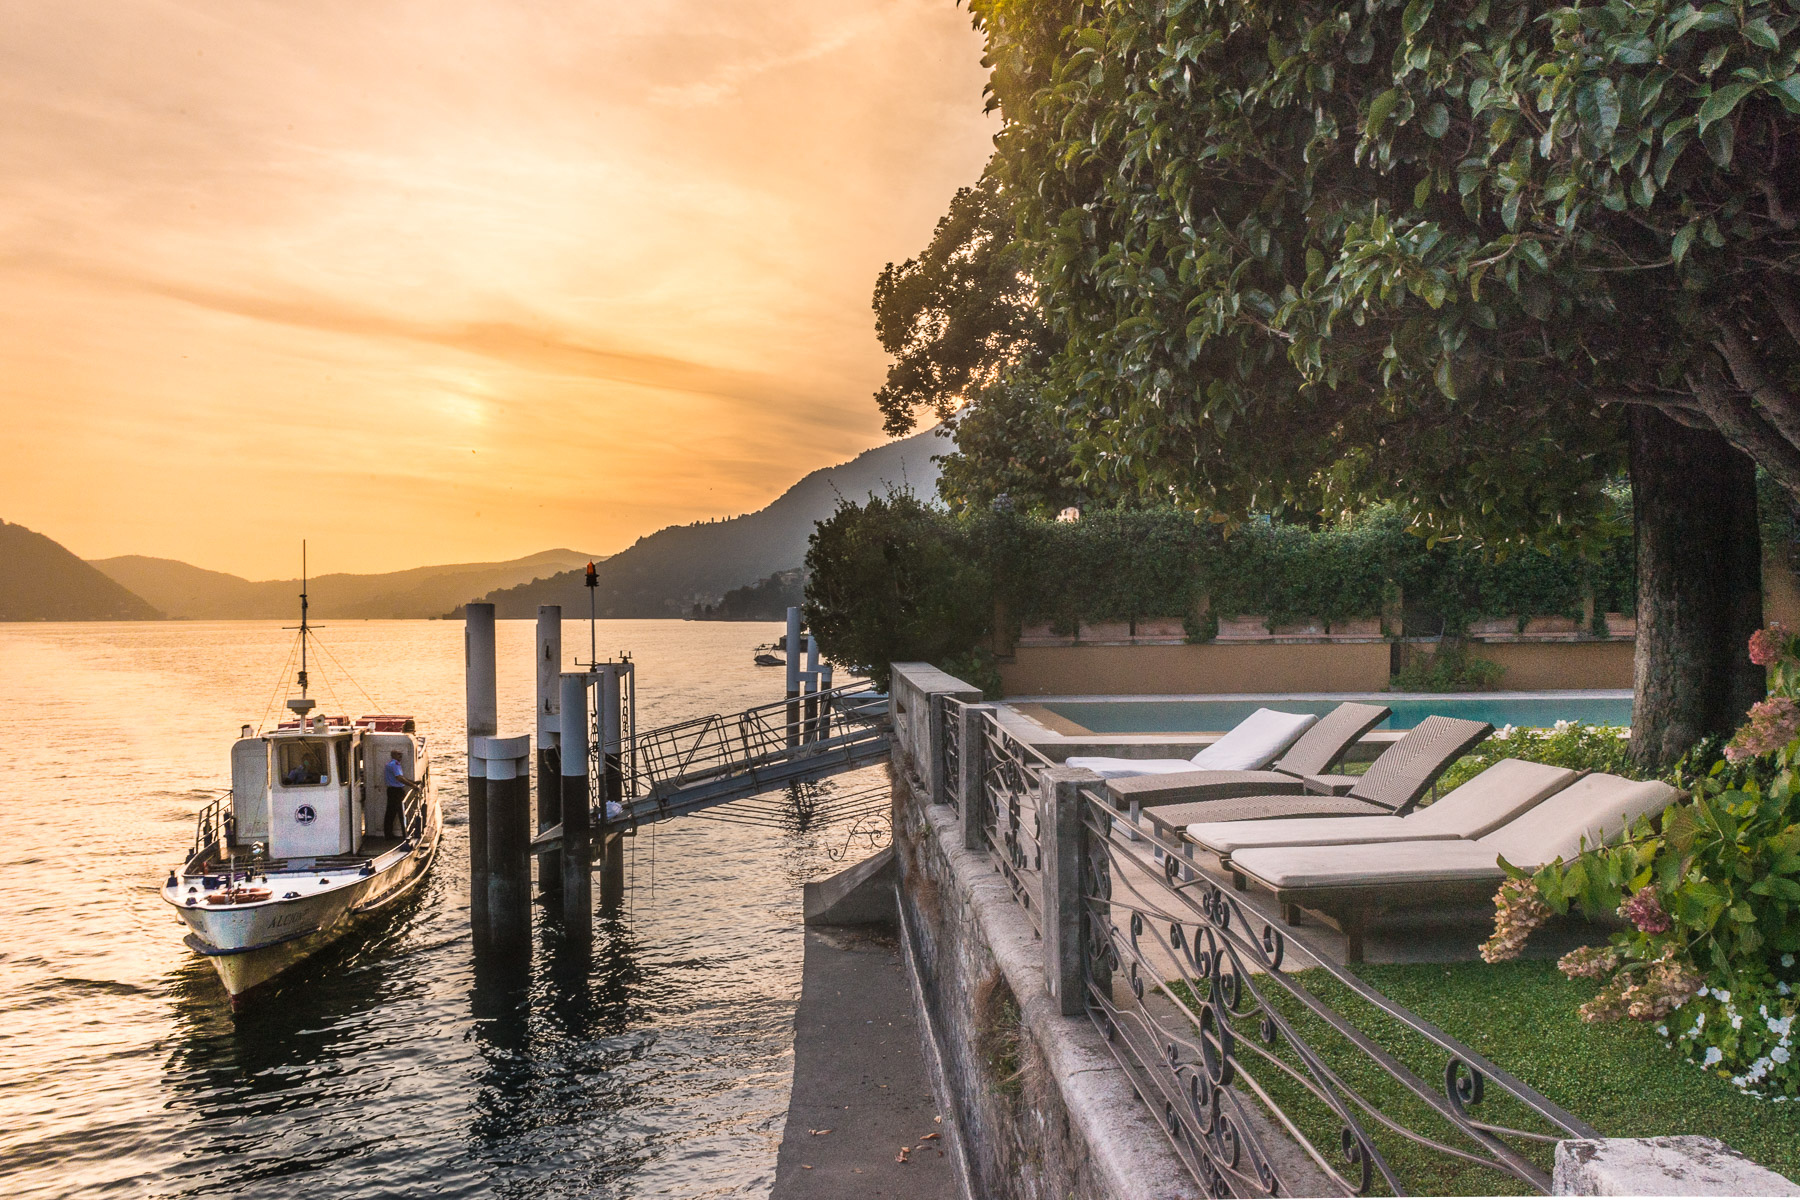 Property for Sale at Splendid period villa on the water Carate Urio, Como Italy